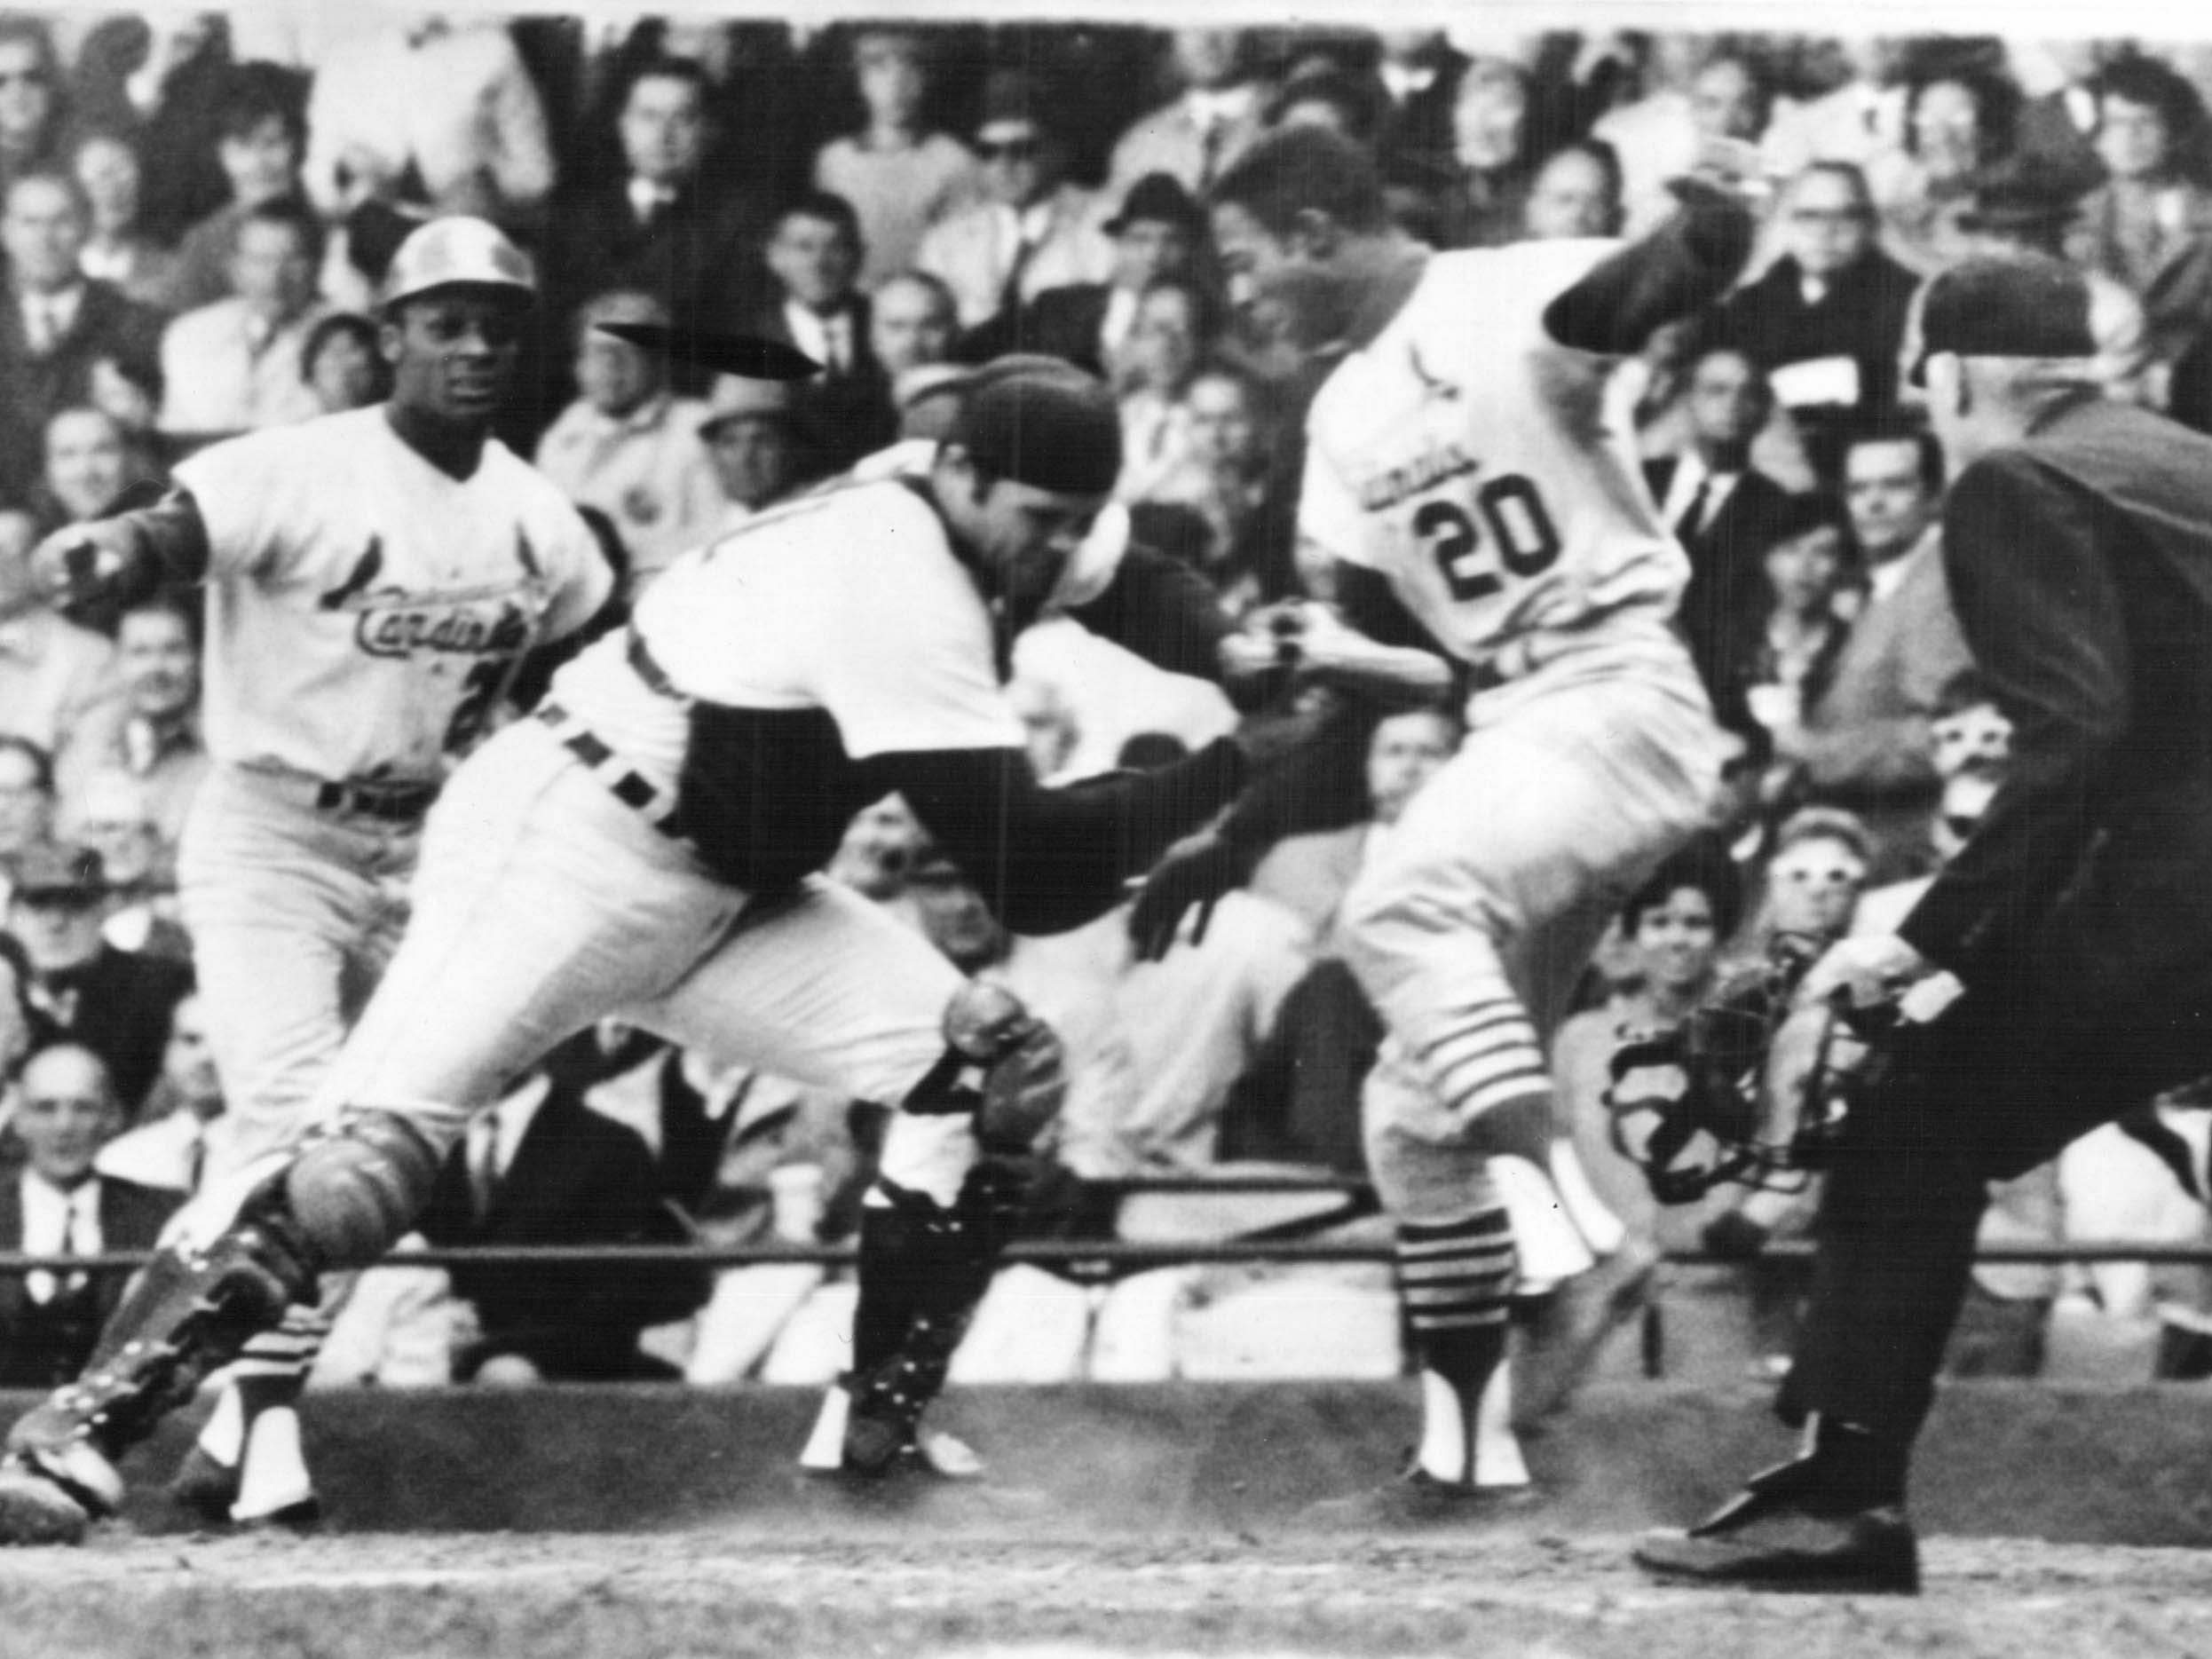 St. Louis Cardinals' Lou Brock is tagged out at home plate by Bill Freehan of the Tigers in the fifth inning of fifth game of World Series at Tiger stadium in Detroit Oct. 7, 1068. Watching is umpire Doug Harvey, right, and Curt Flood of the Cards.